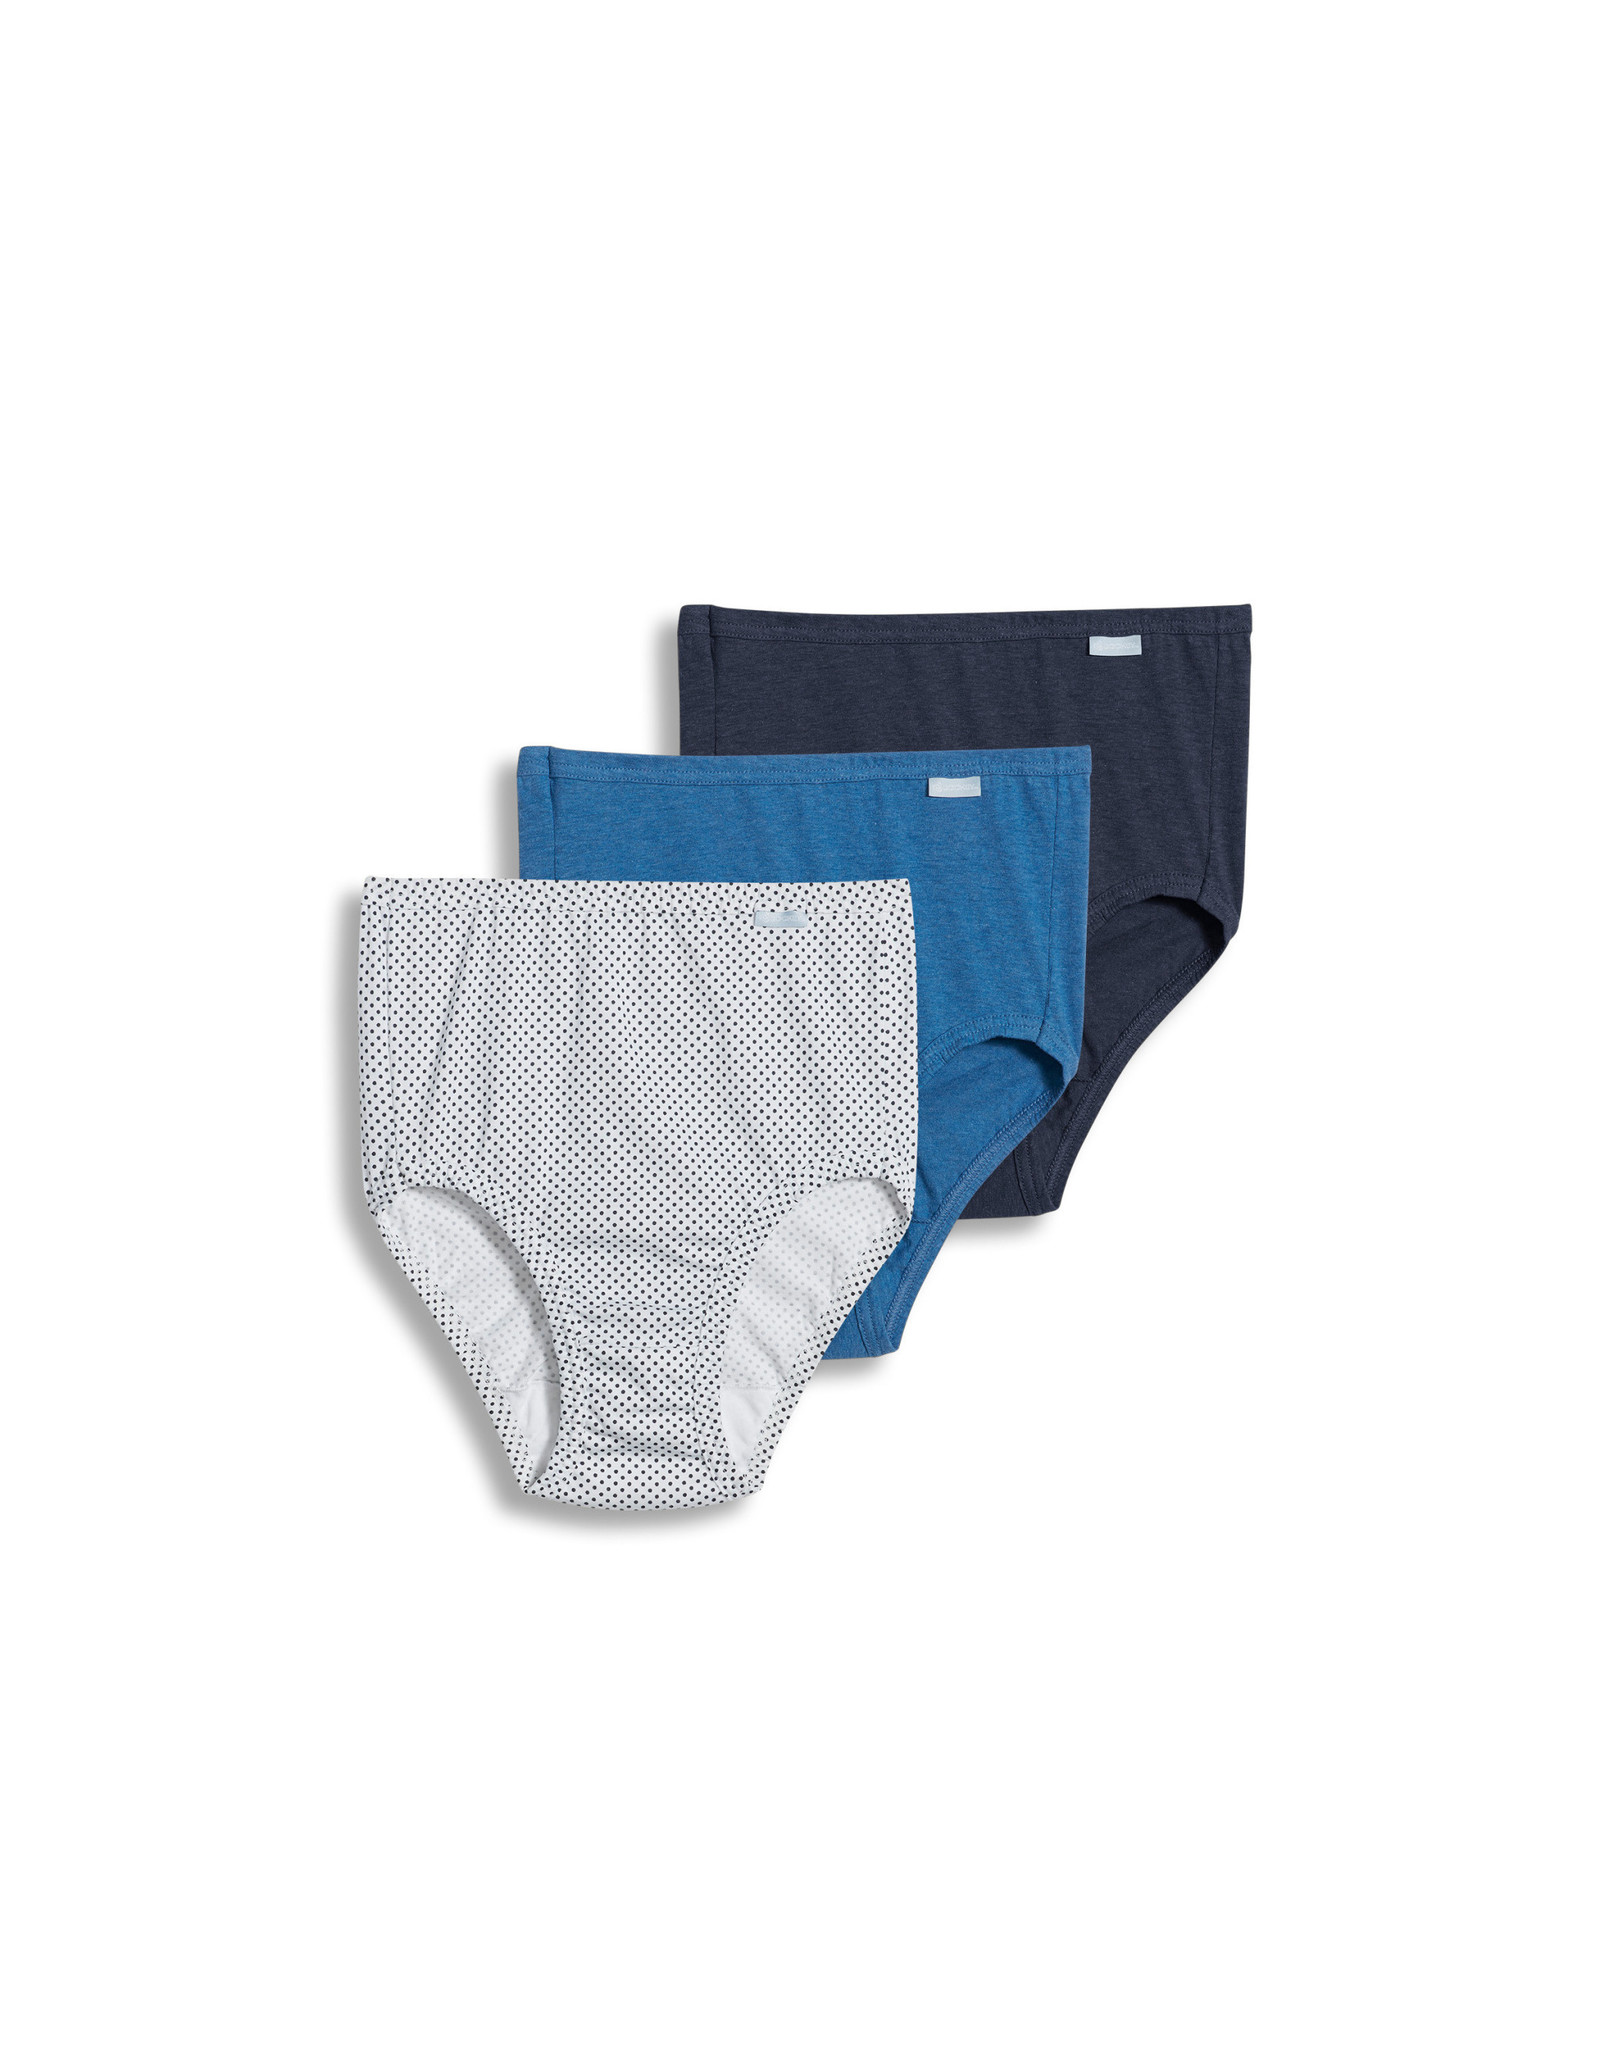 JOCKEY Elance Classic Fit Brief (100% Cotton)